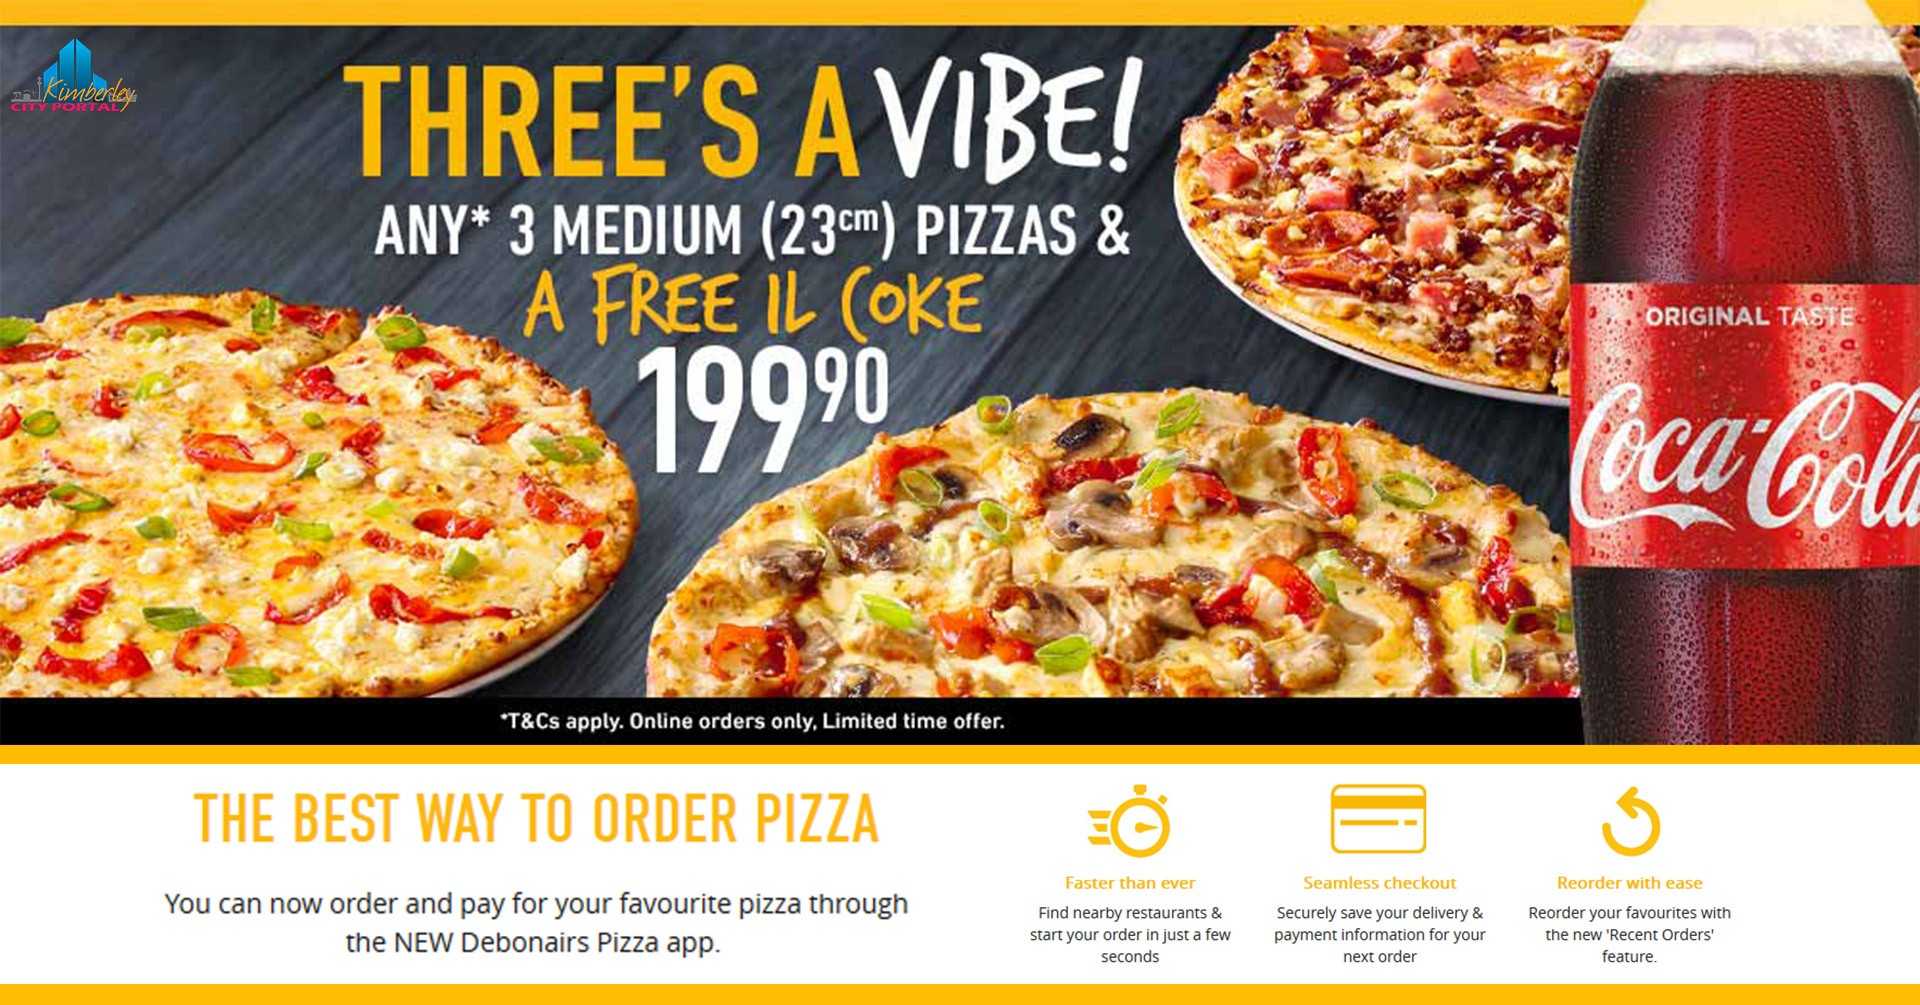 DEBONAIRS_Theres_A_Vibe_Promotion-PM-201908